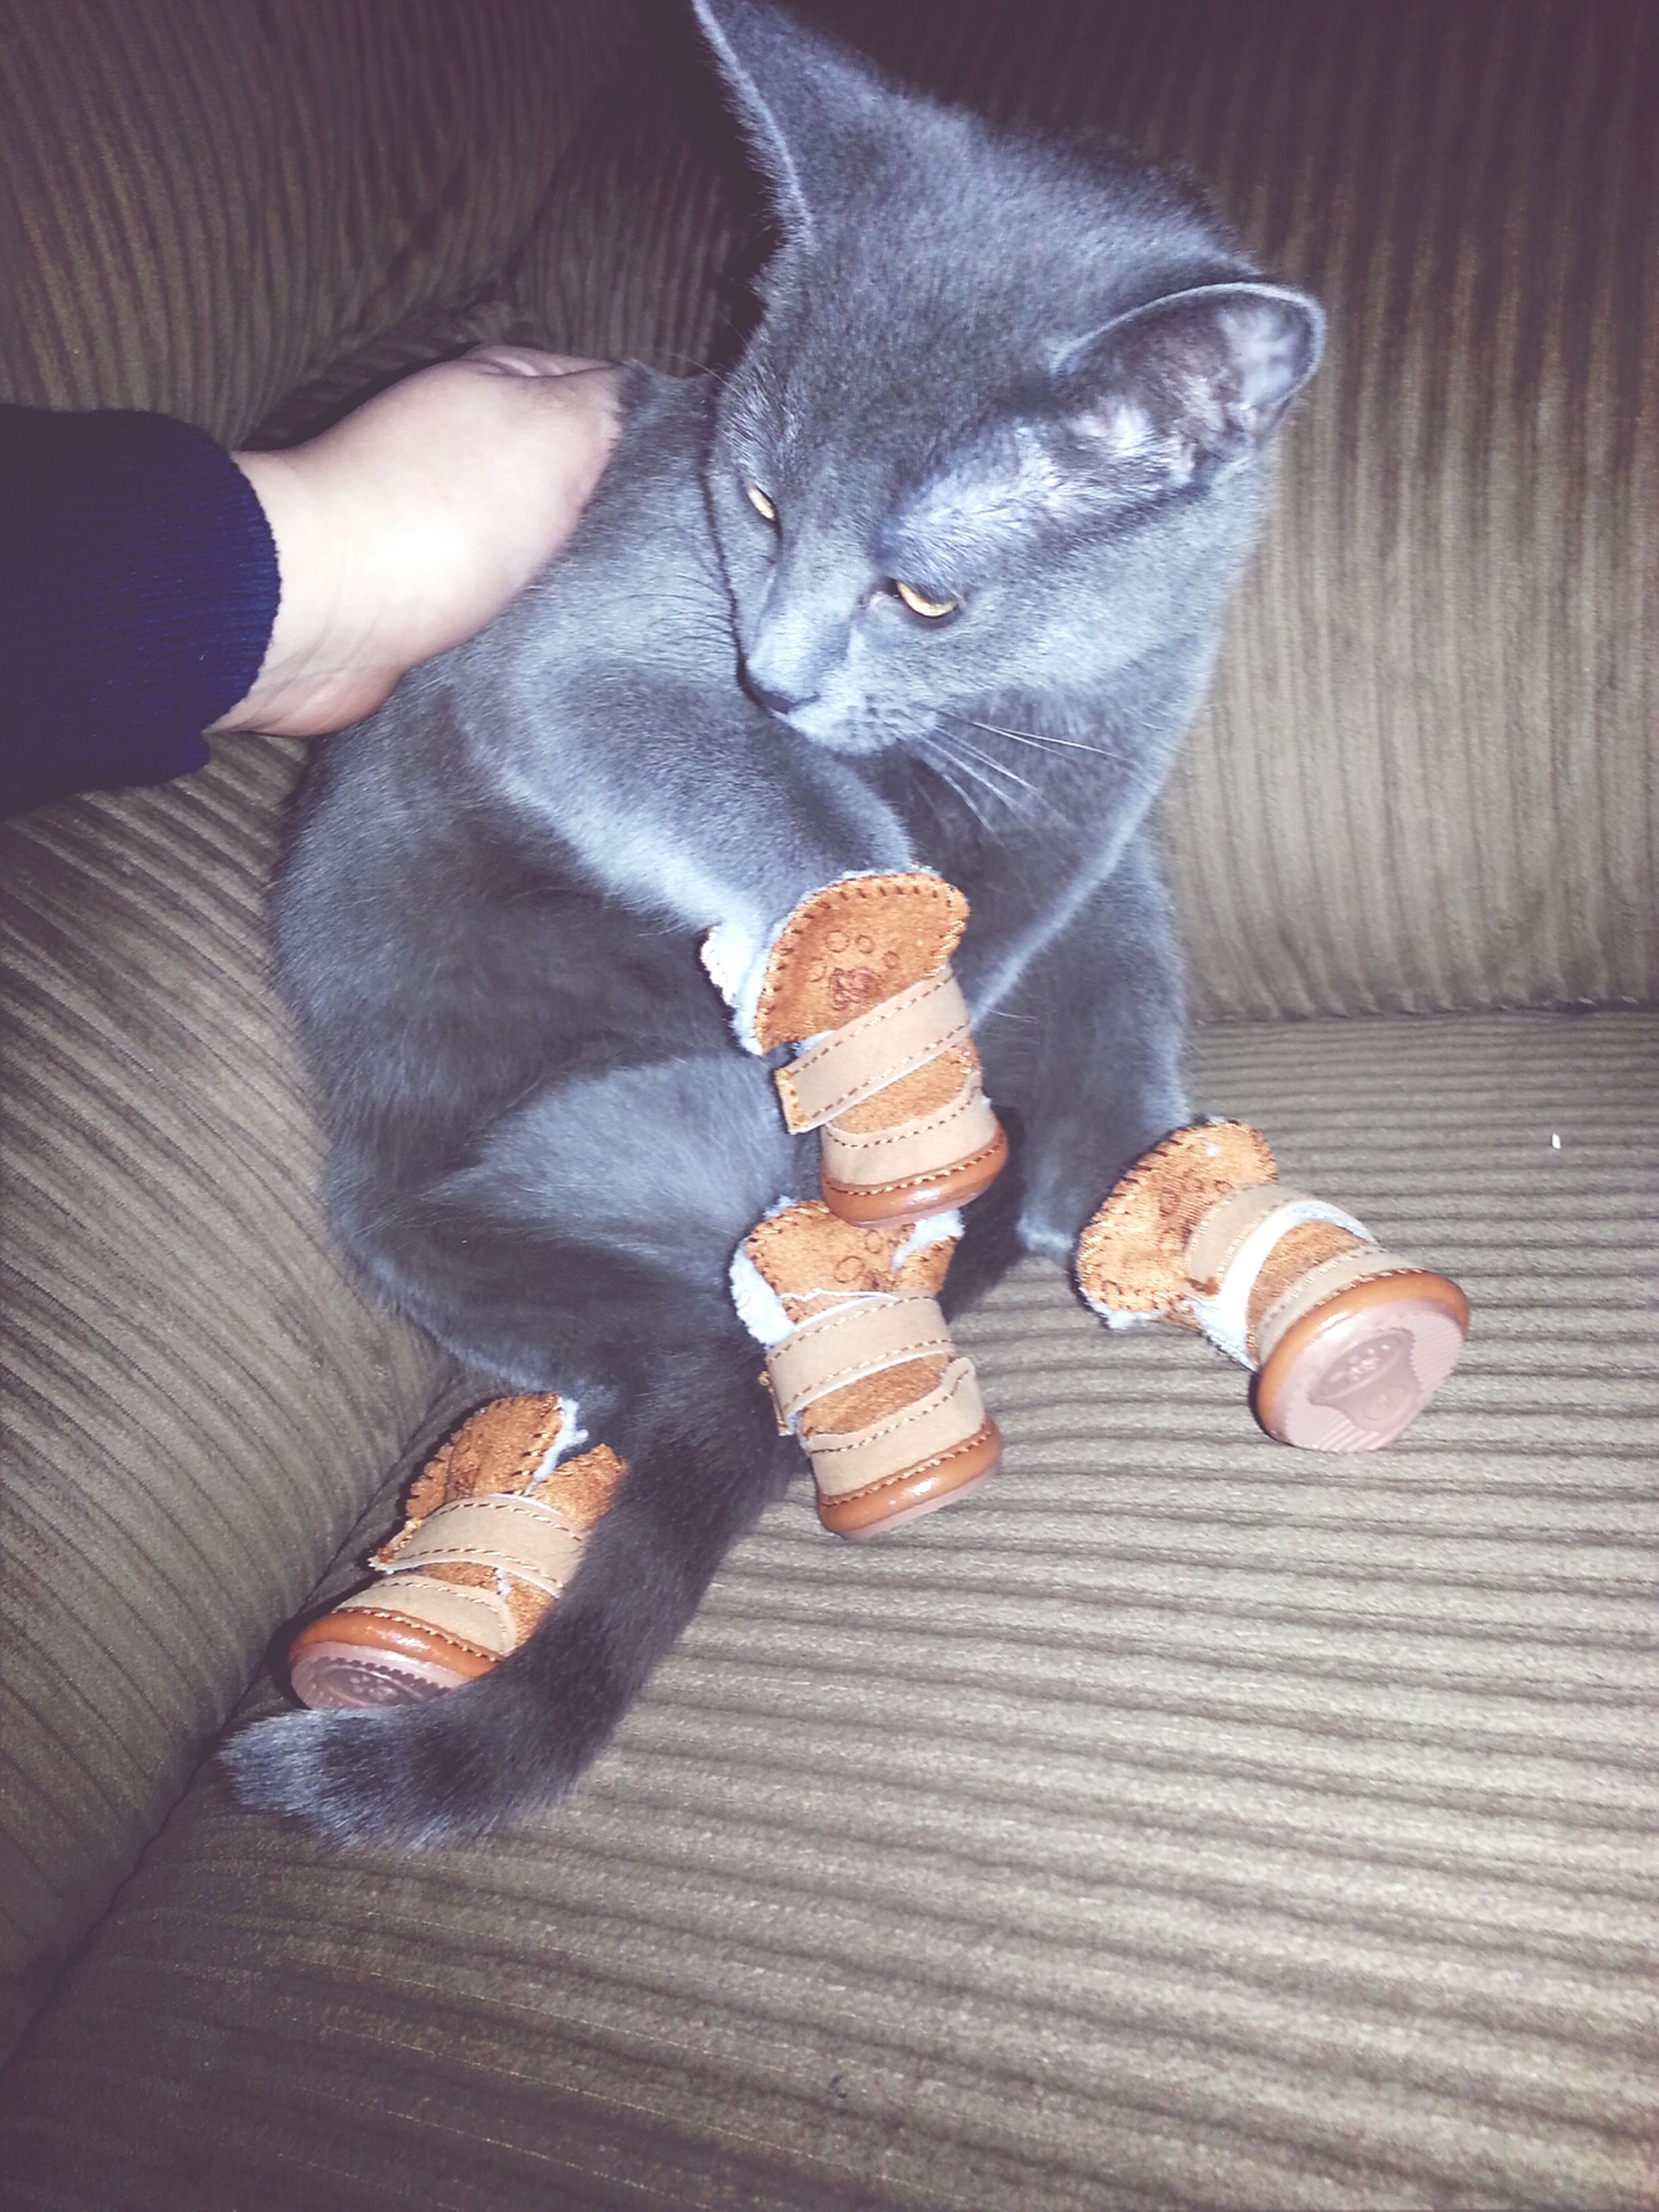 indoors, person, animal themes, one animal, food and drink, food, part of, holding, high angle view, wood - material, pets, unrecognizable person, human finger, close-up, domestic animals, cropped, table